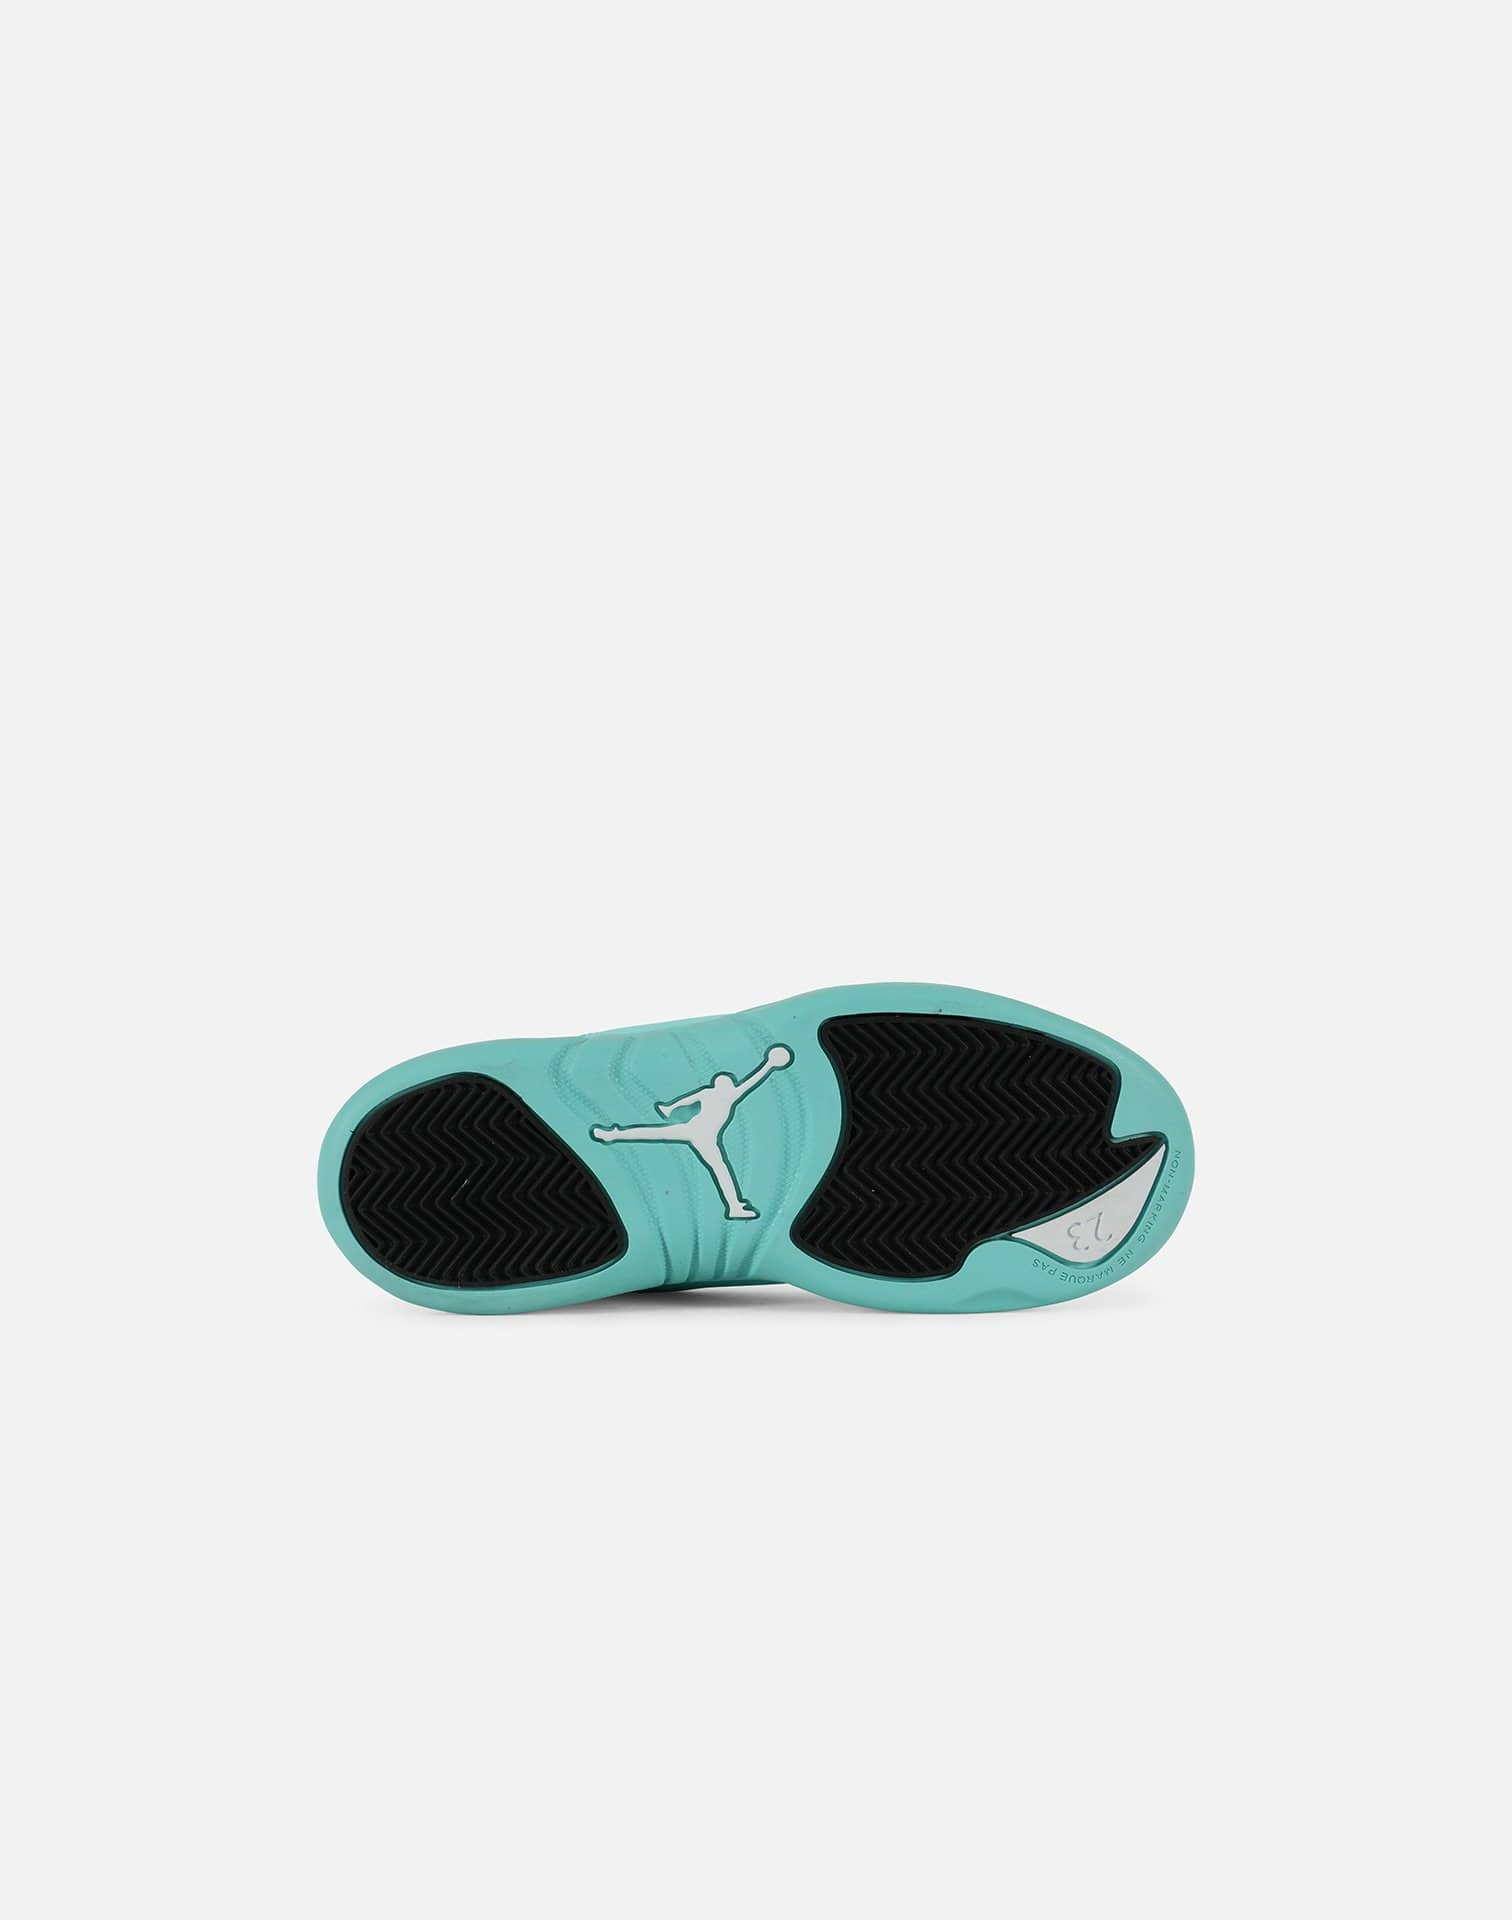 Jordan Air Jordan Retro 12 'Light Aqua' Pre-School